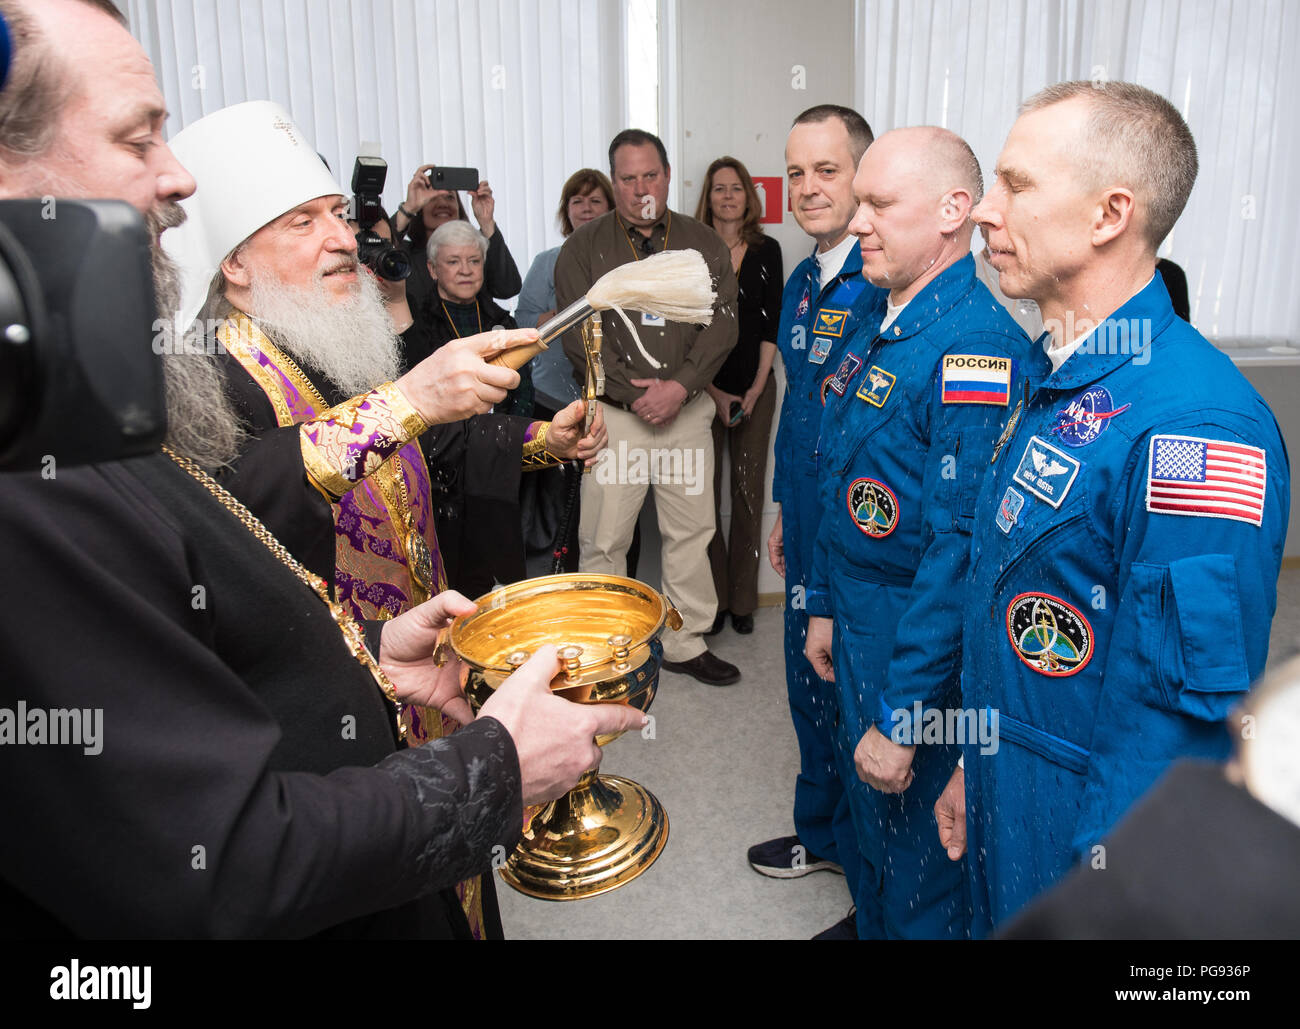 Expedition 55 flight engineer Ricky Arnold of NASA, Soyuz Commander Oleg Artemyev of Roscosmos, and flight engineer Drew Feustel of NASA receive a blessing from a Russian Orthodox Priest at the Cosmonaut Hotel prior to departing the hotel for launch on a Soyuz rocket, Wednesday, March 21, 2018 in Baikonur, Kazakhstan.  Arnold, Artemyev, and Feustel will launch in their Soyuz MS-08 spacecraft to the International Space Station to being a five month mission. - Stock Image